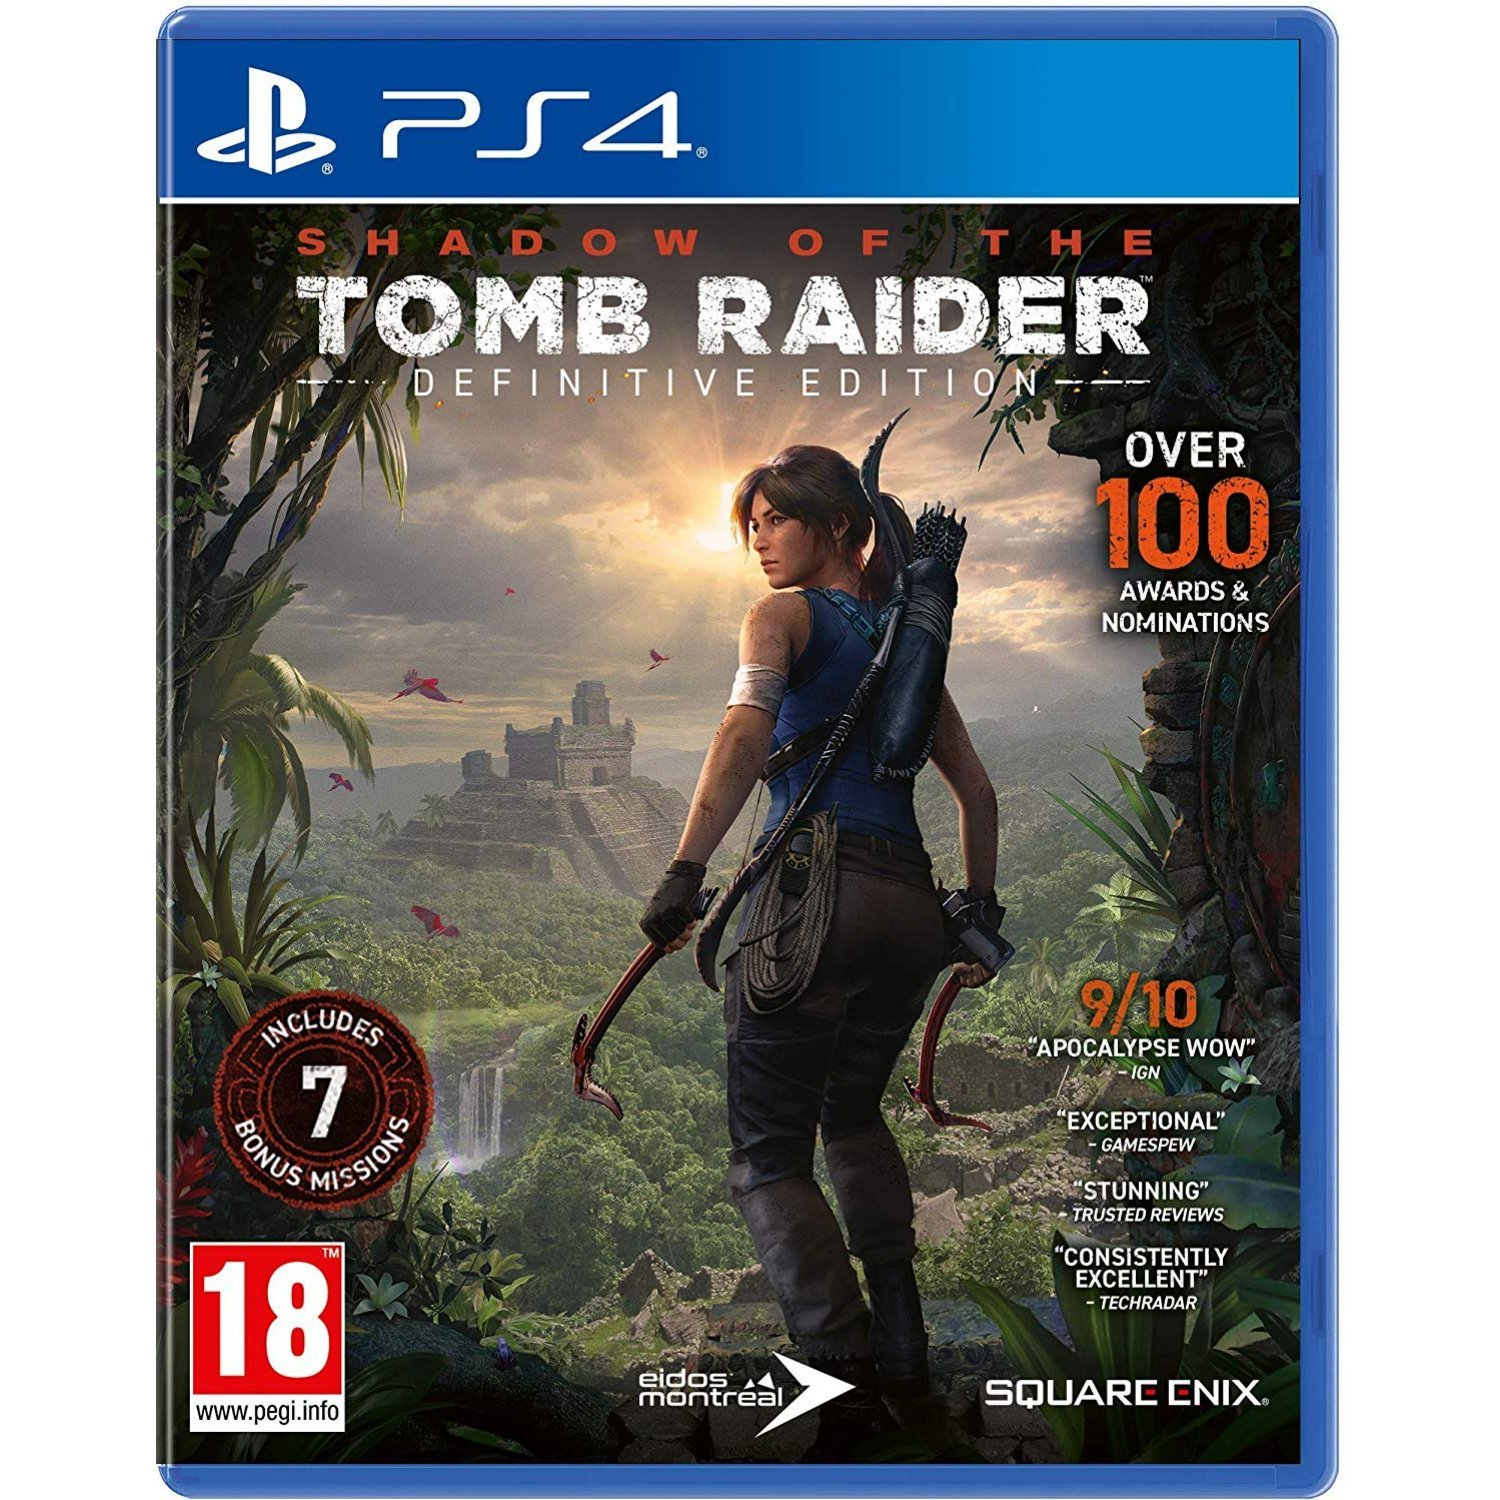 shadow-of-the-tomb-raider-definitive-edition-611061.9.jpg